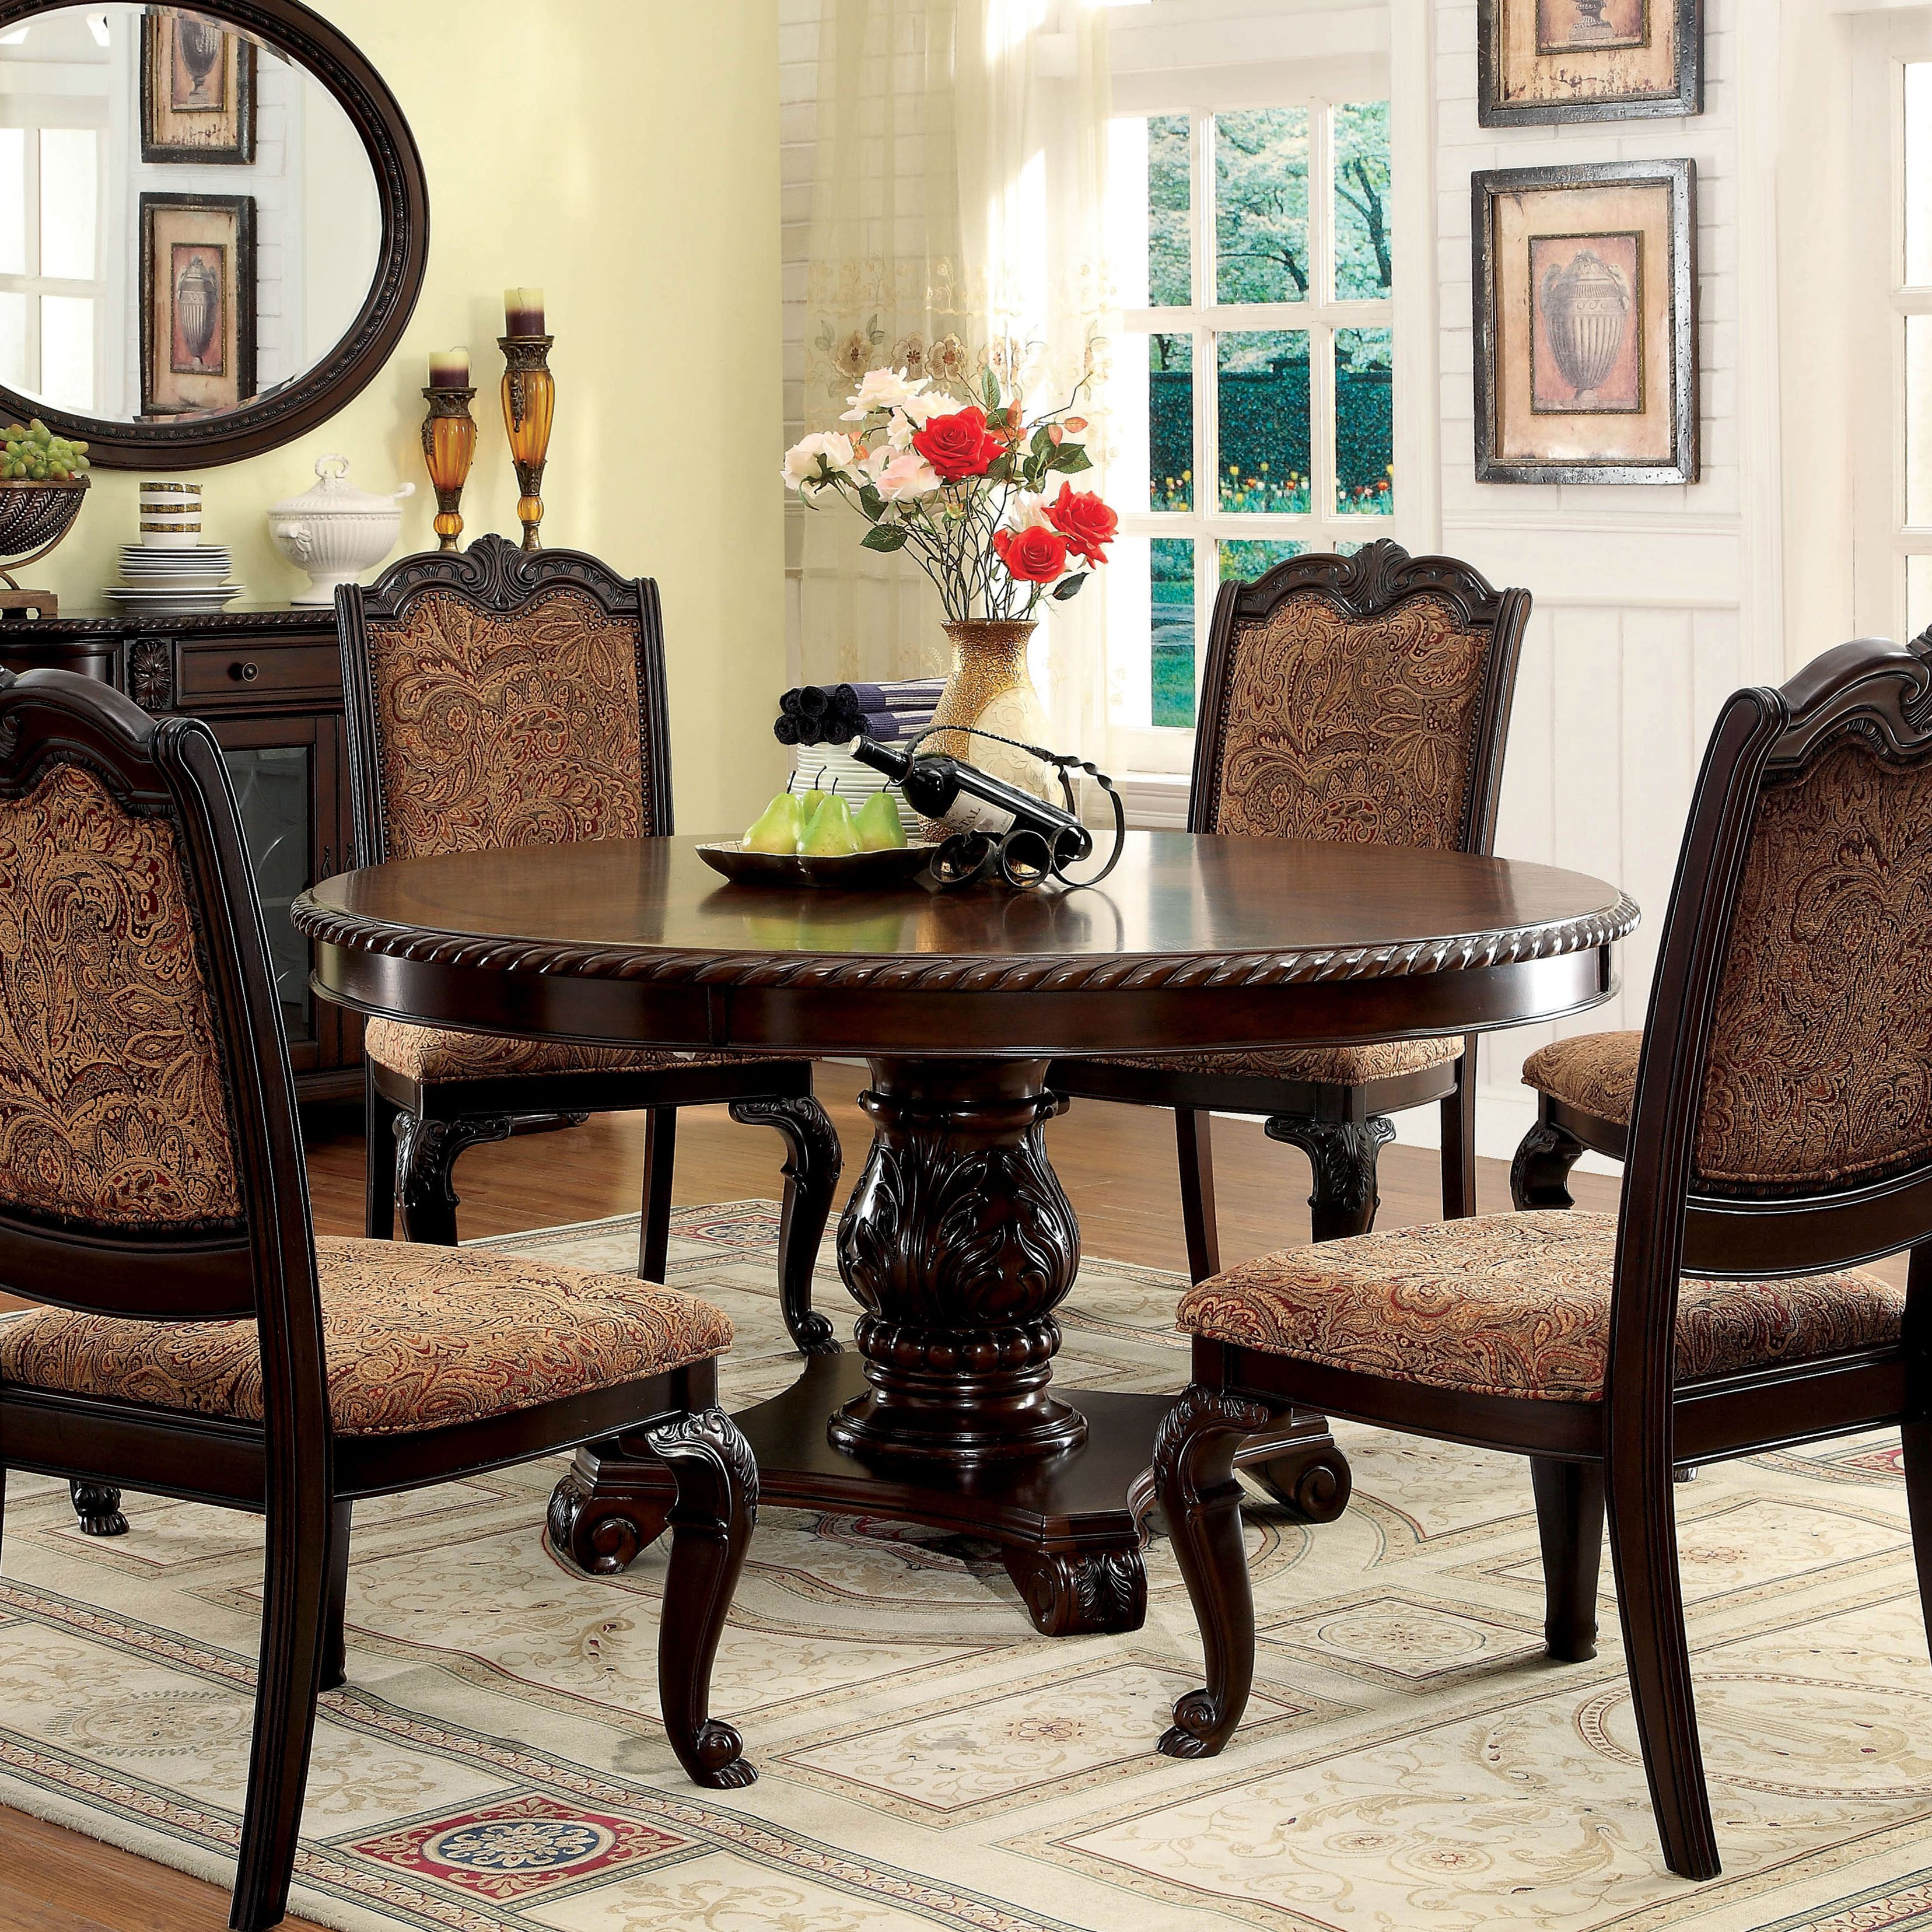 Elegantly formal with a design that is innately sophisticated this